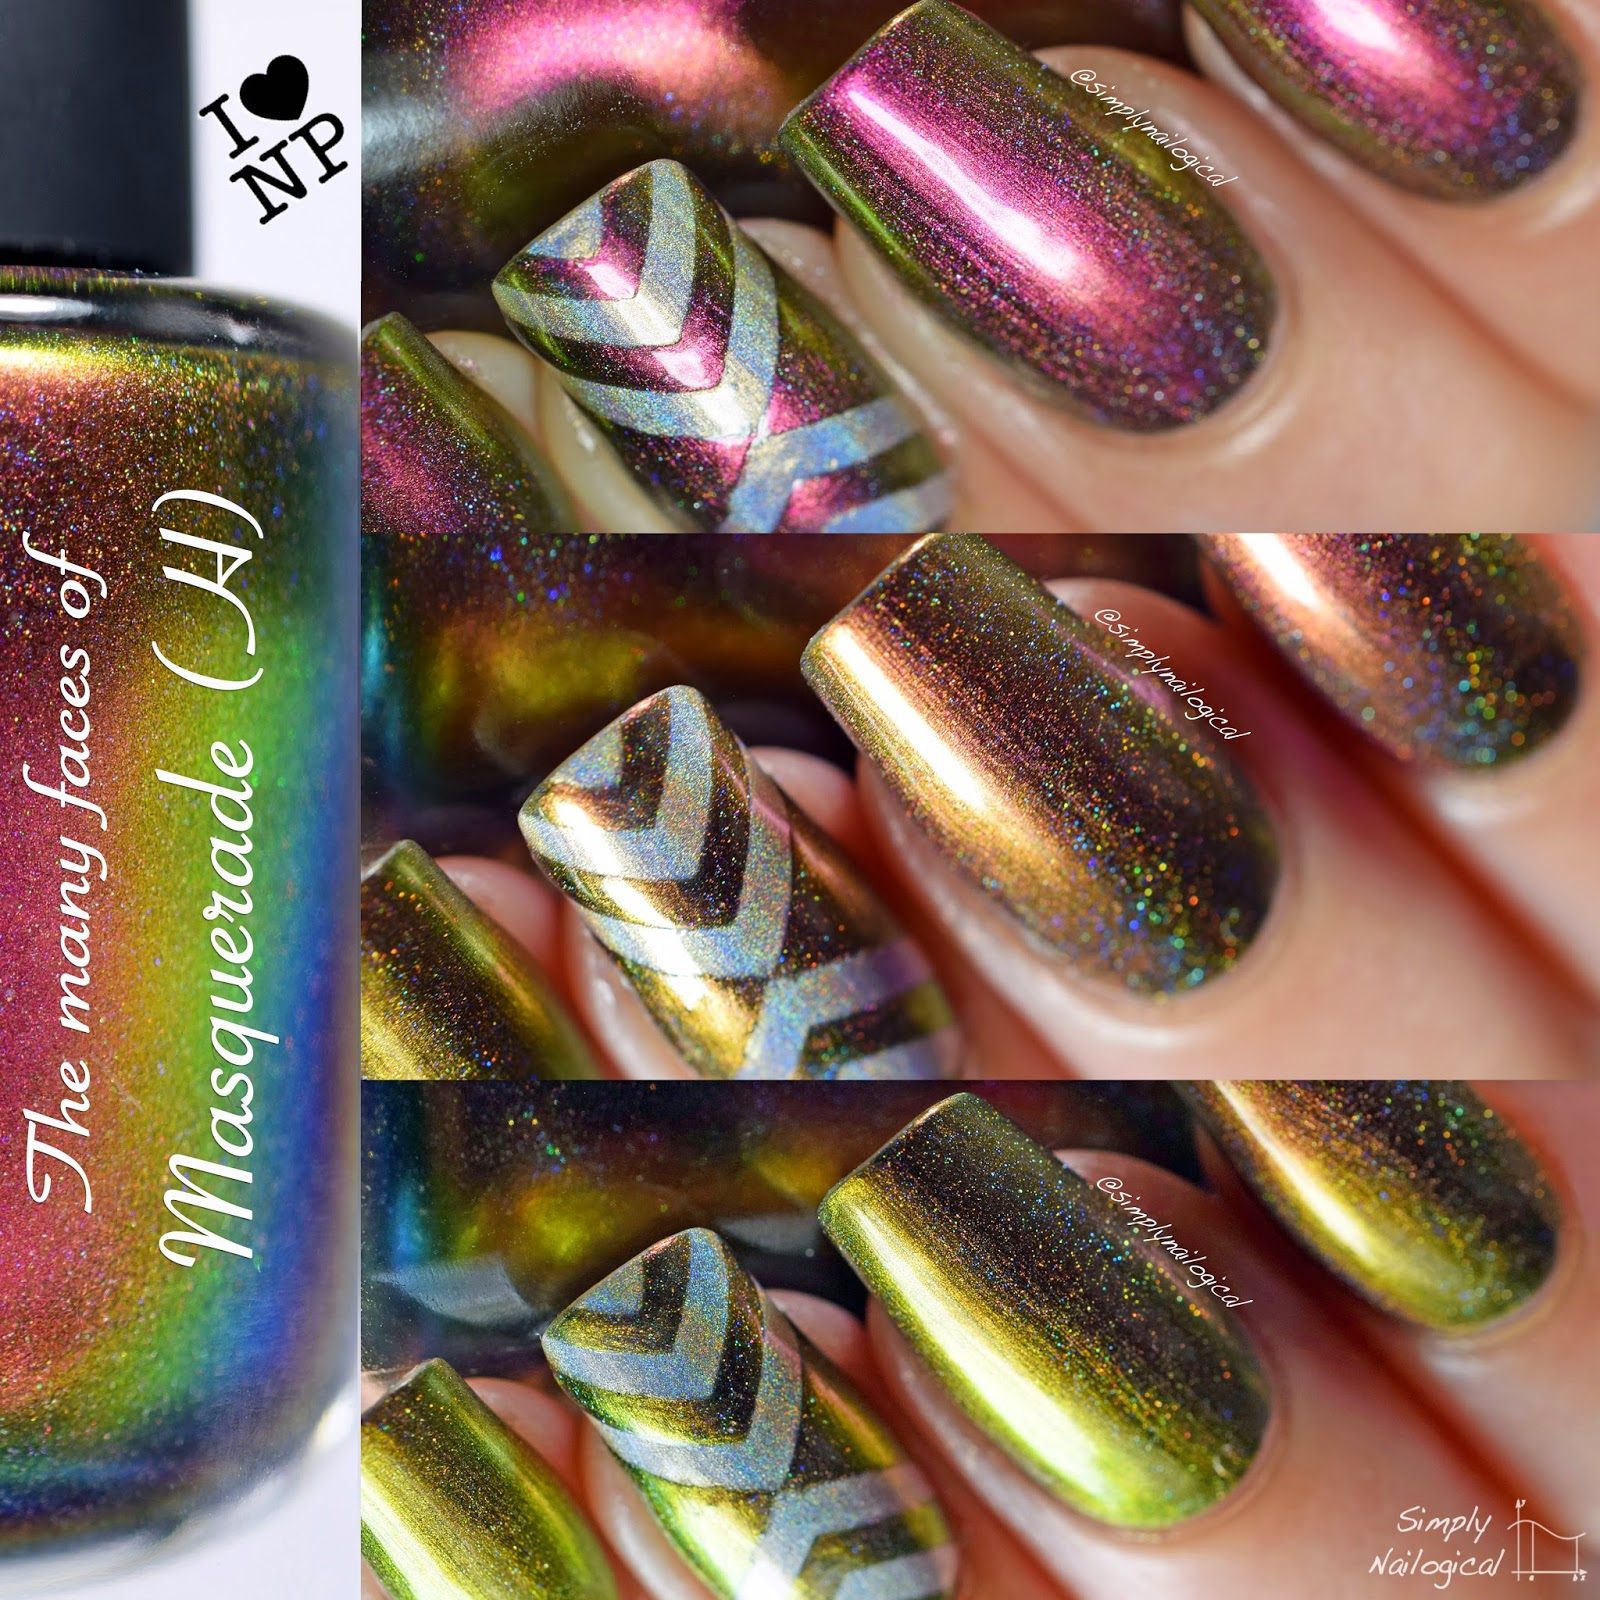 Masquerade (H)  - ILNP Fall 2014 collection swatch